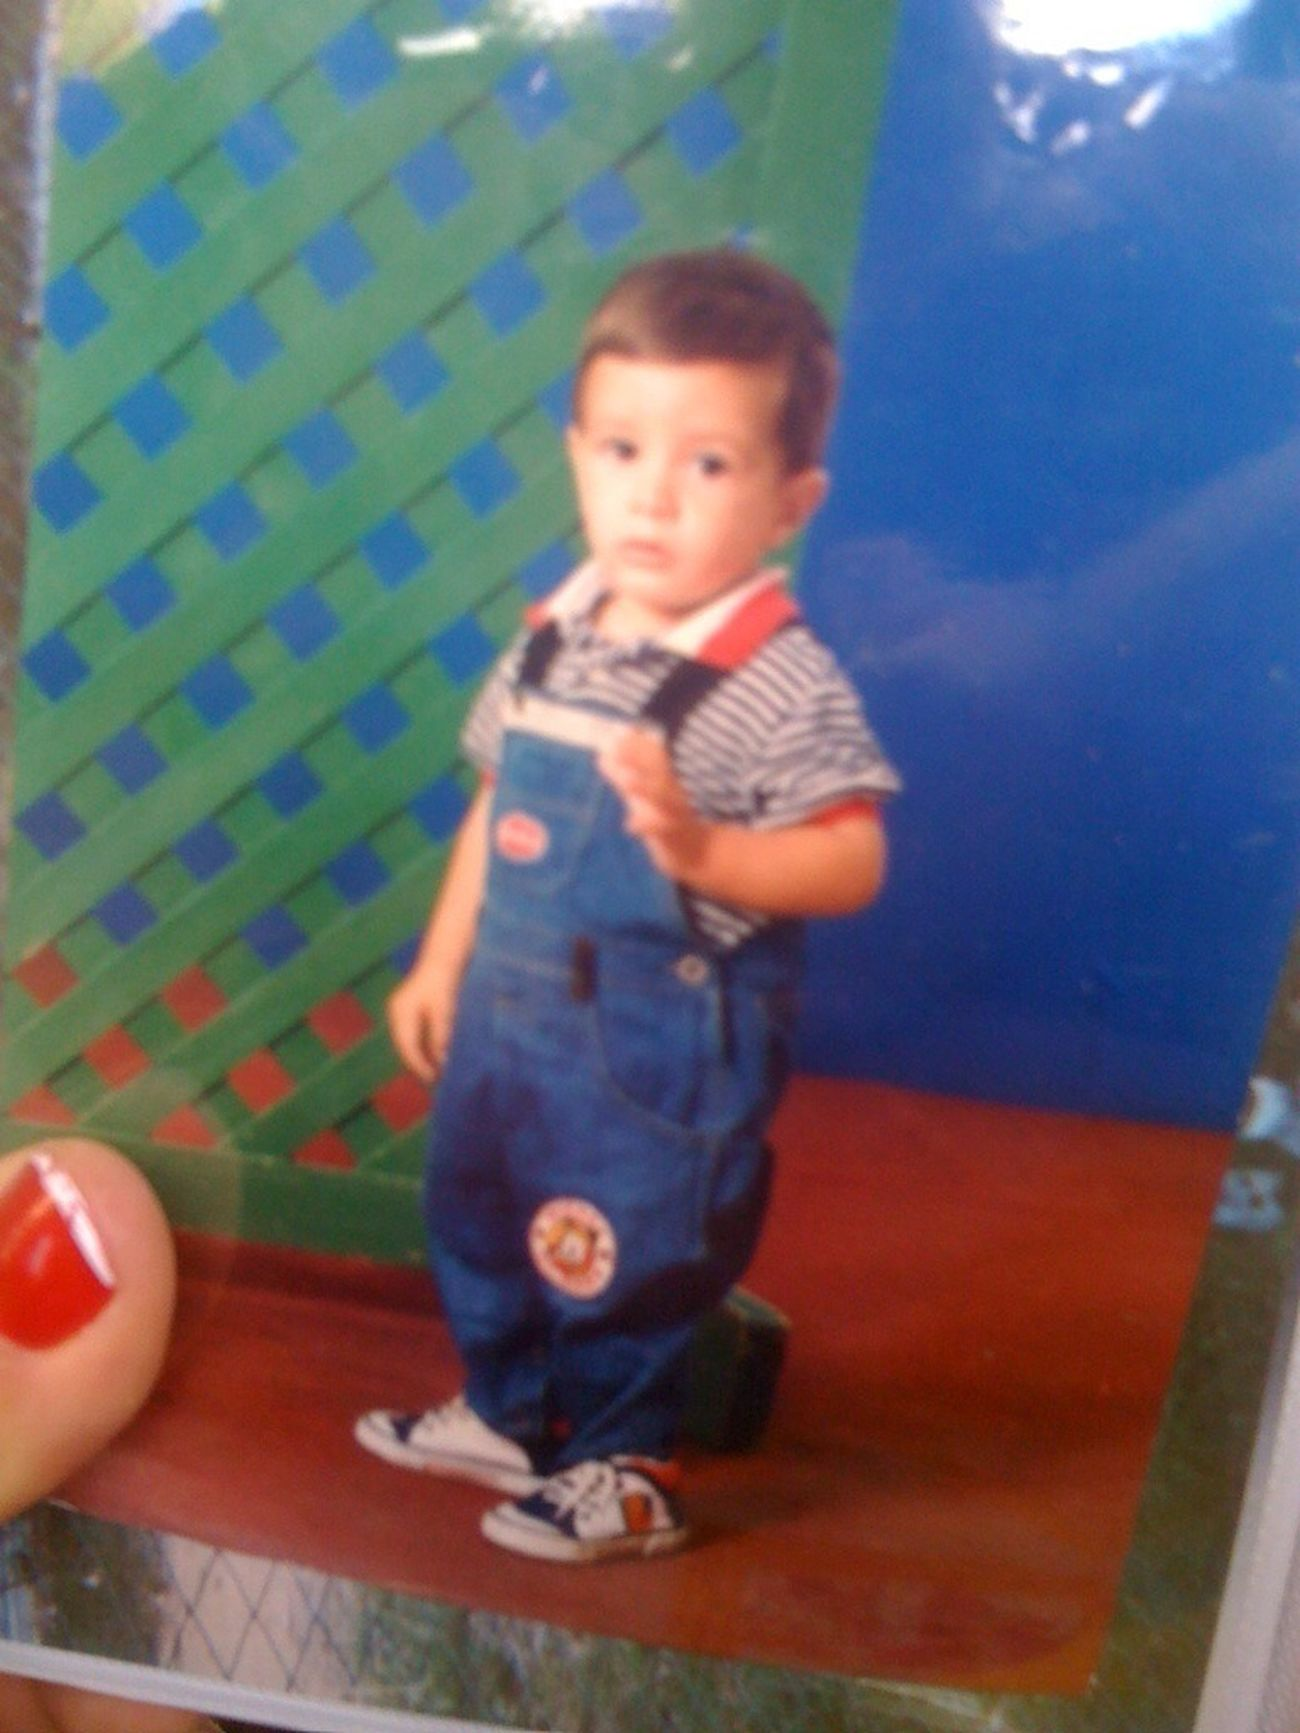 My boyfriend as a baby